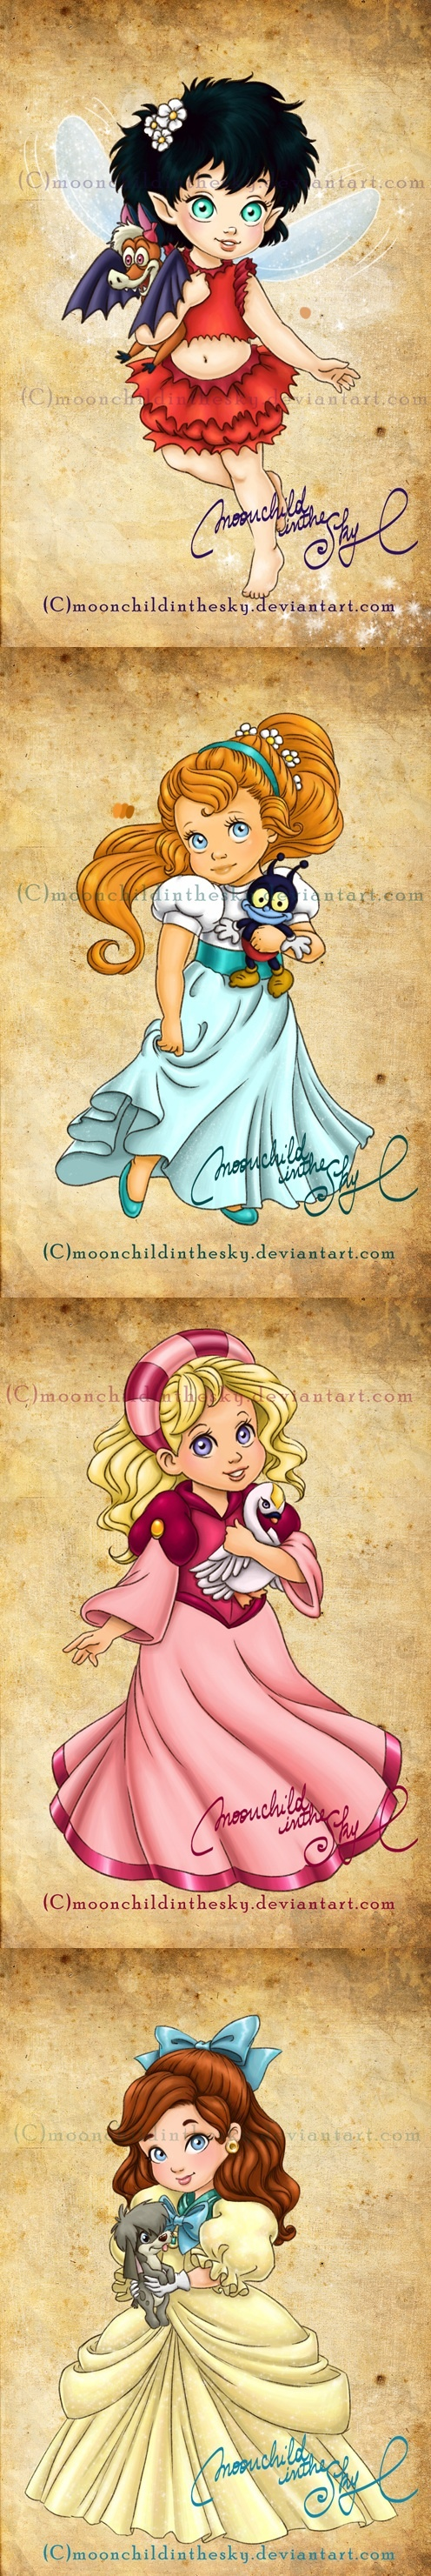 Non-Disney Princesses by moonchildinthesky on deviantart Crysta, Thumbelina, The Swan Princess, and Anastasia